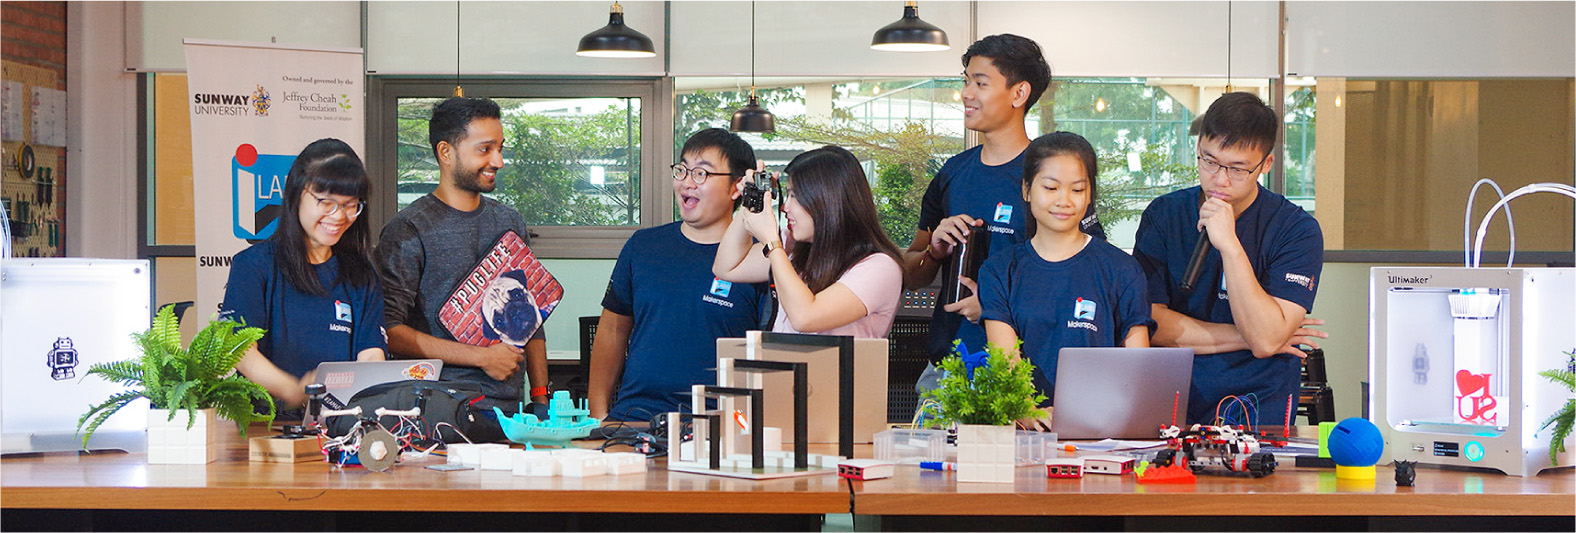 Sunway students at Sunway Makerspace